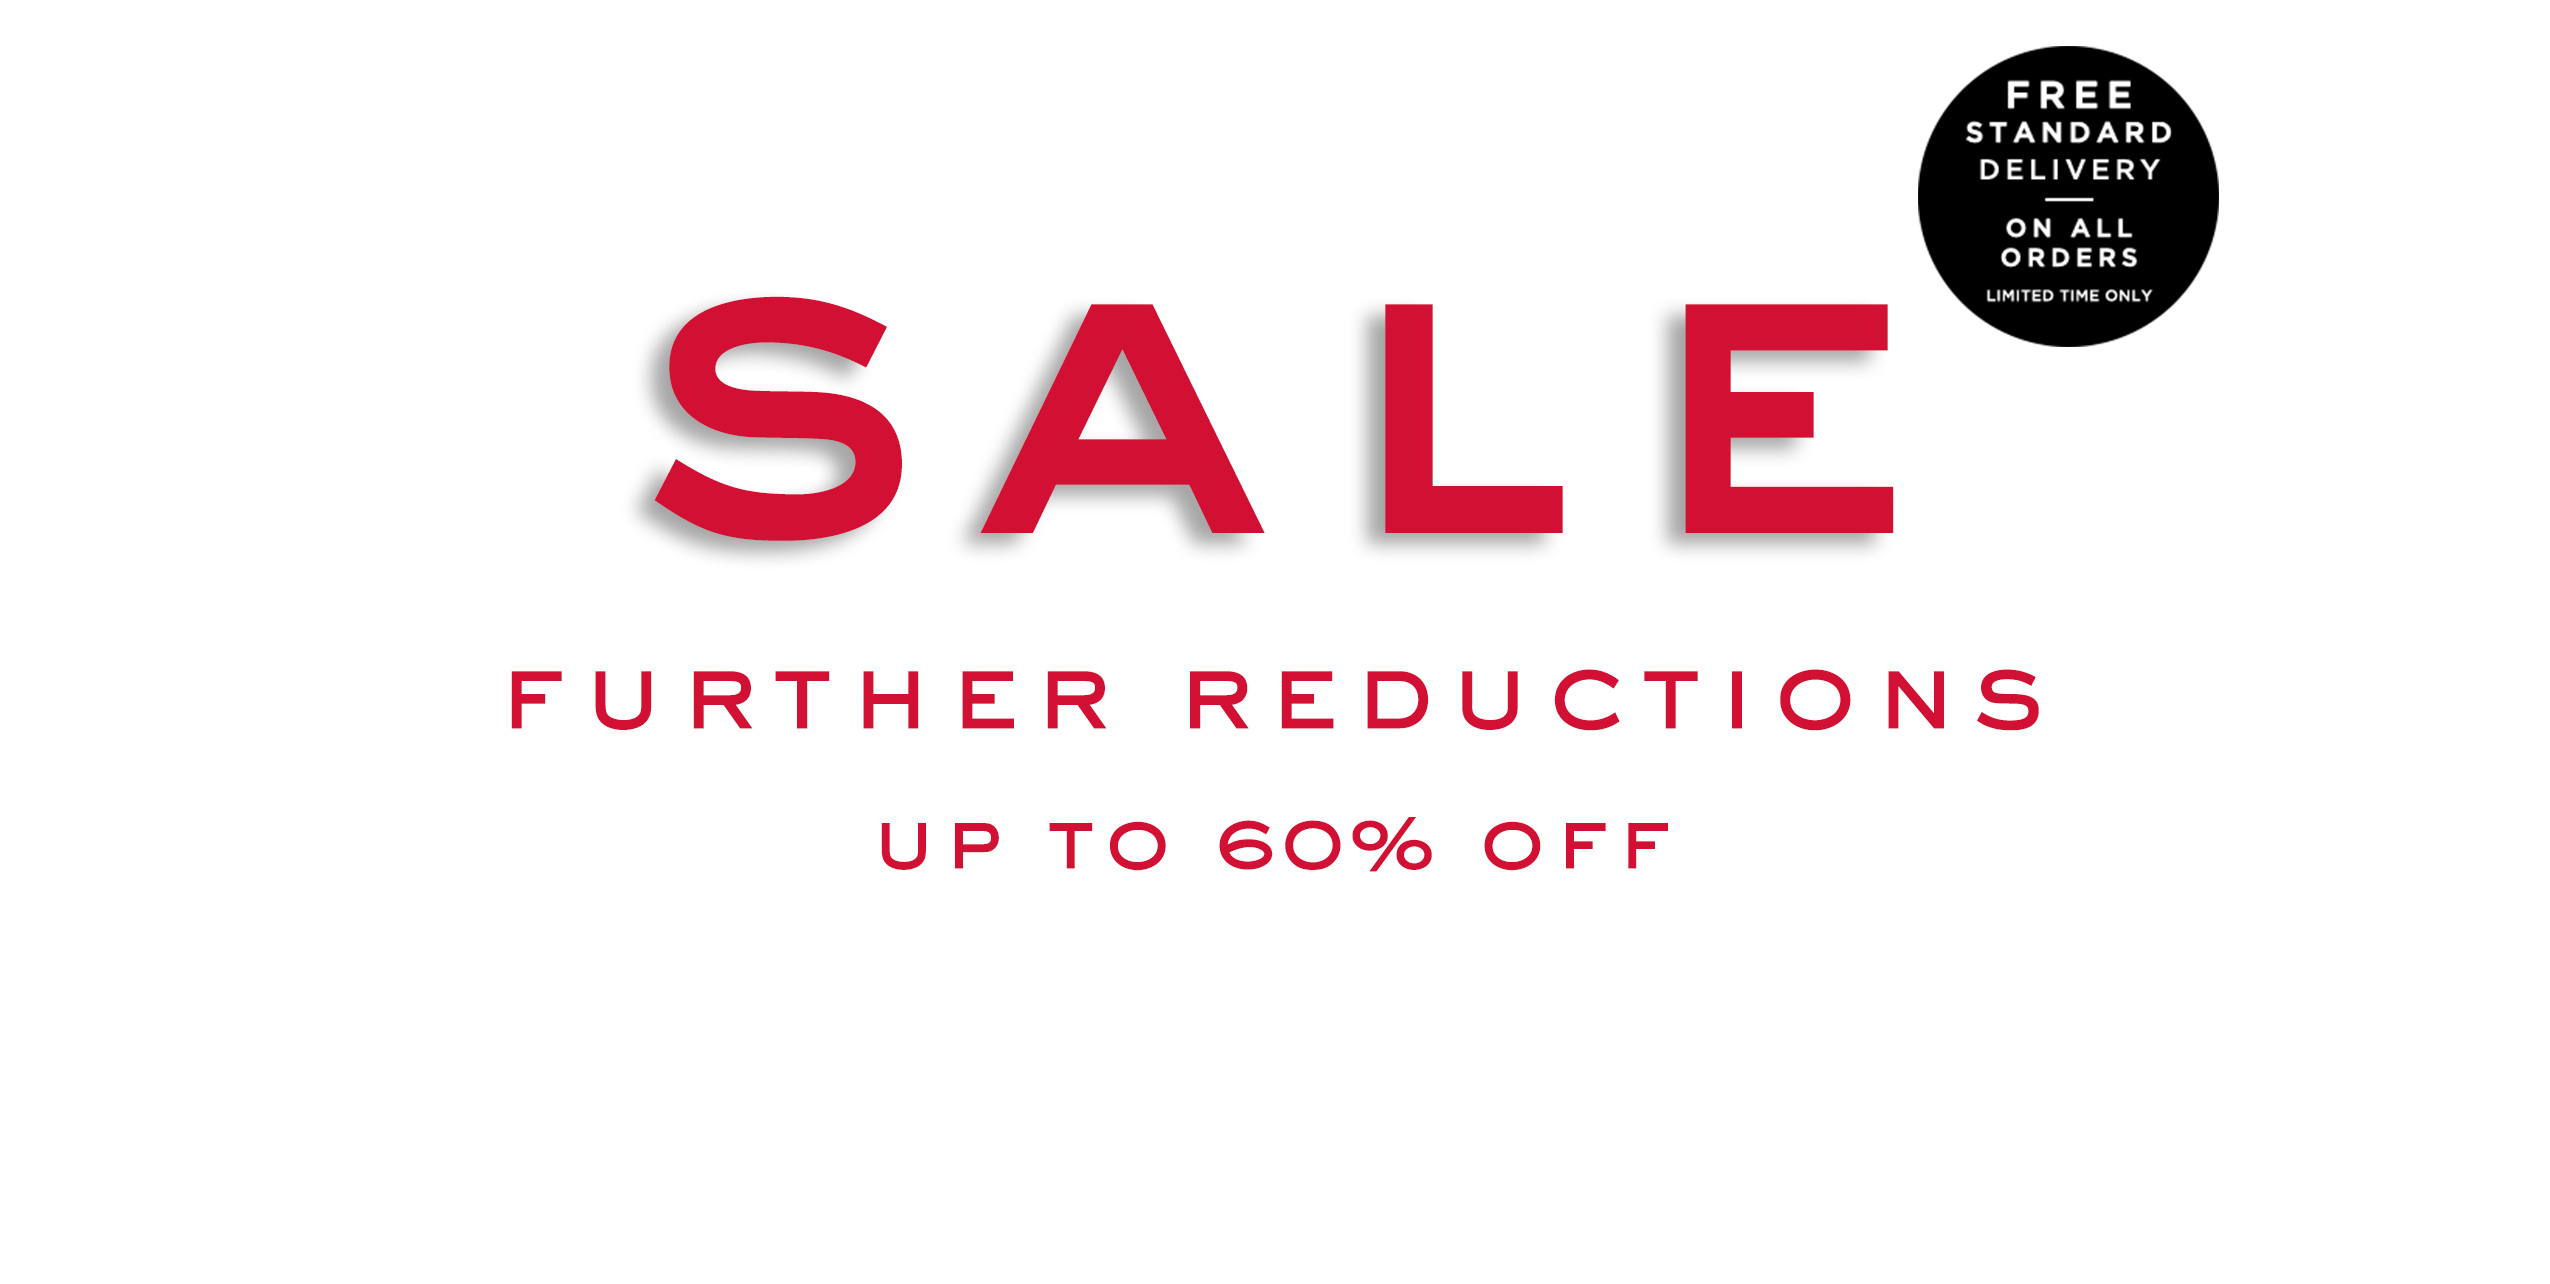 Sale: Up to 60% Off plus free delivery on all orders